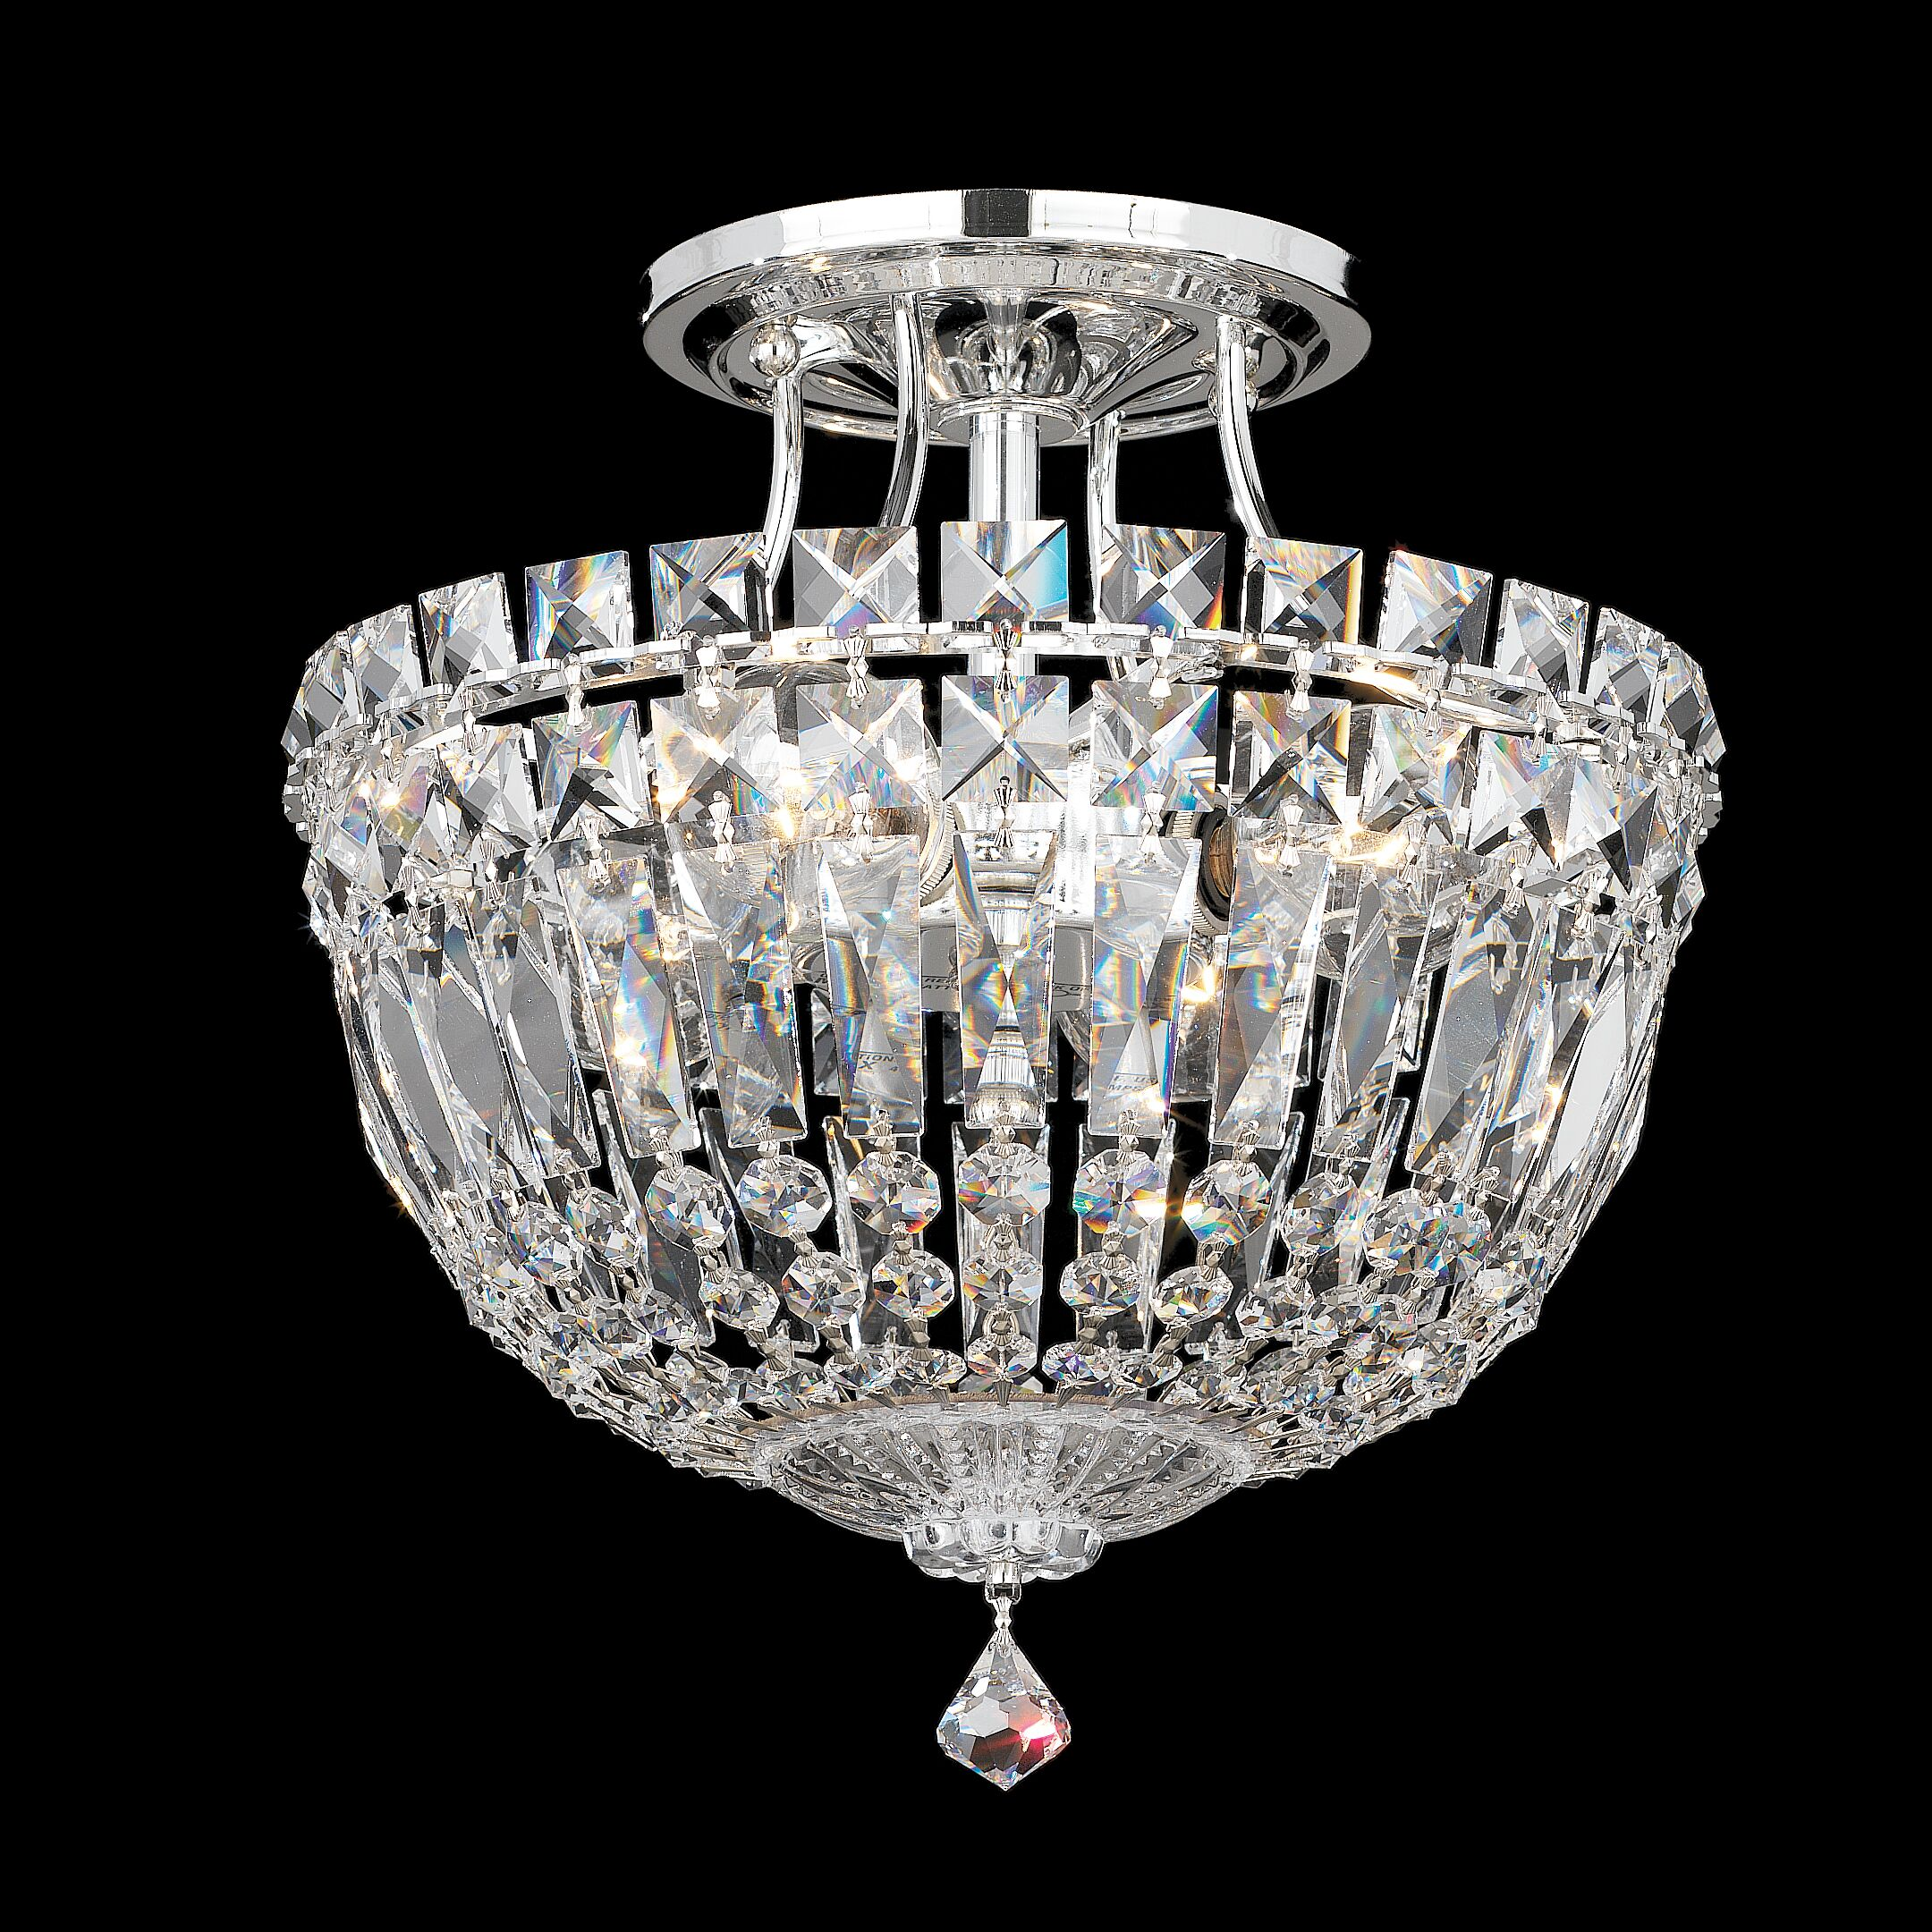 Petit Deluxe Semi Flush Mount Size / Finish / Crystal Grade: 10